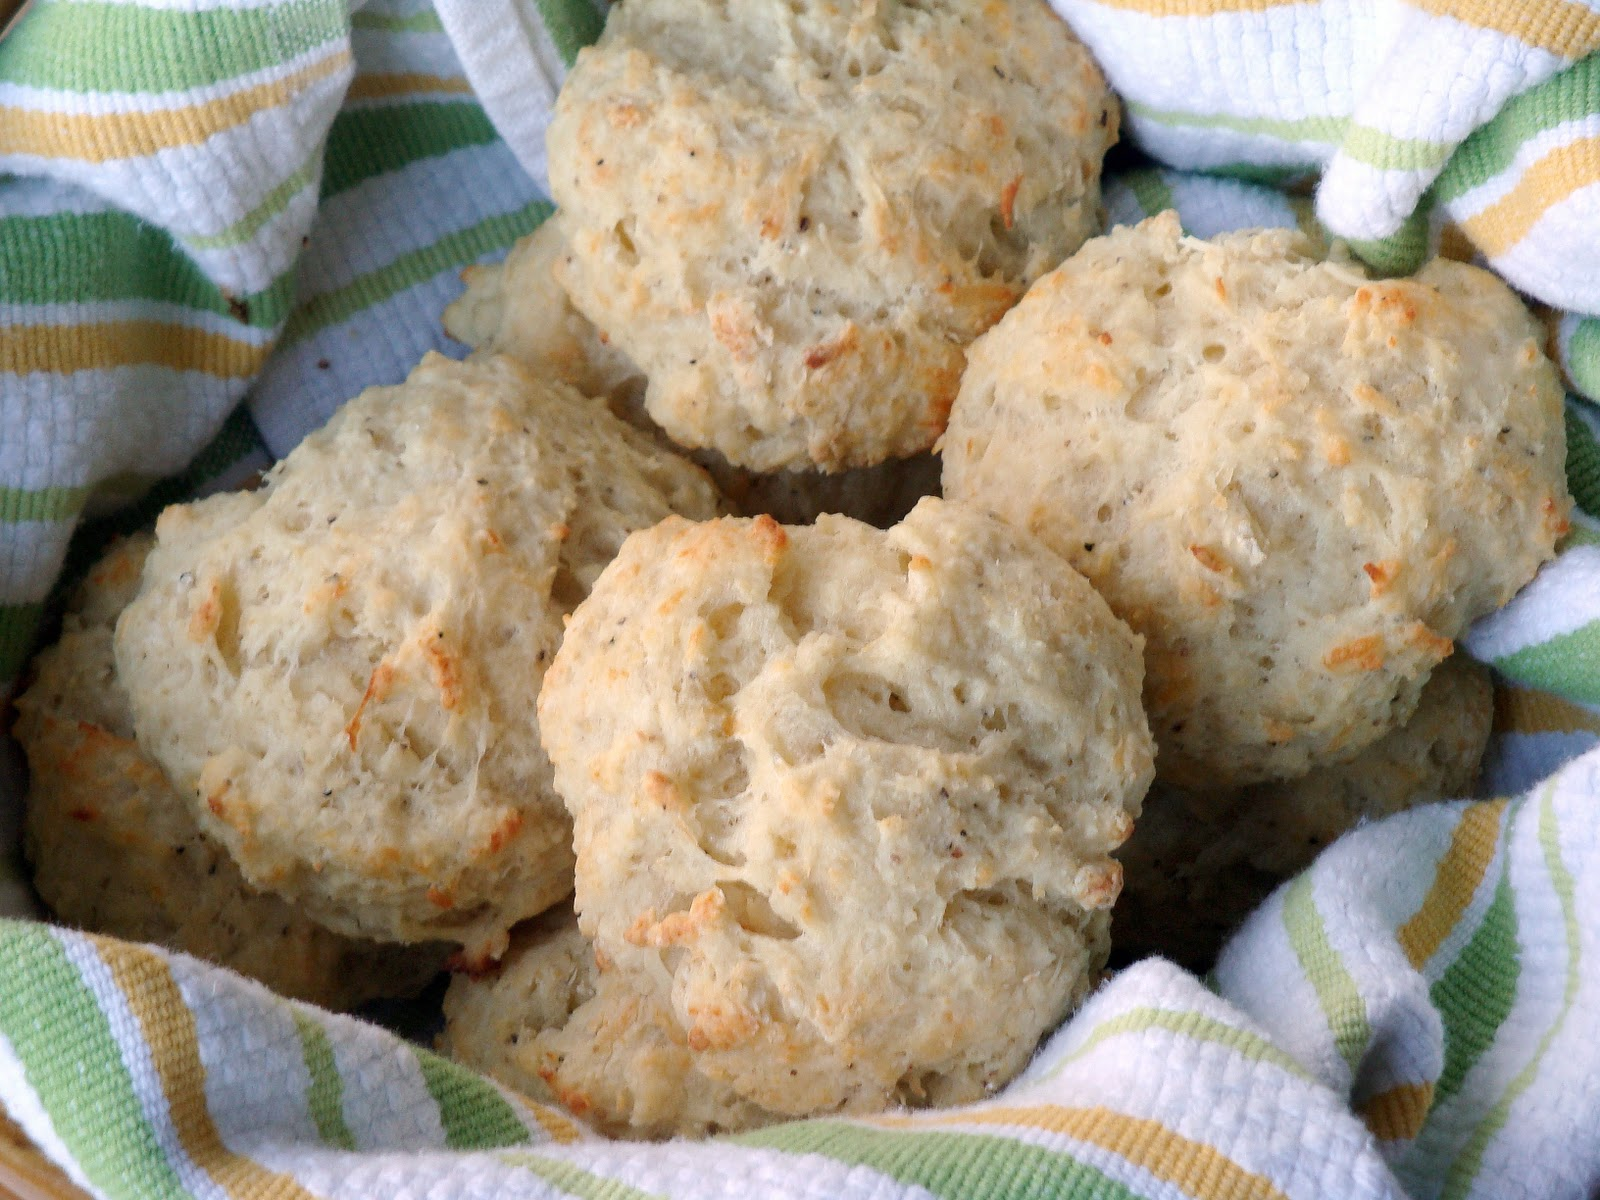 Quick Biscuit Recipe Truffle Parmesan Biscuits With Pesto And ...